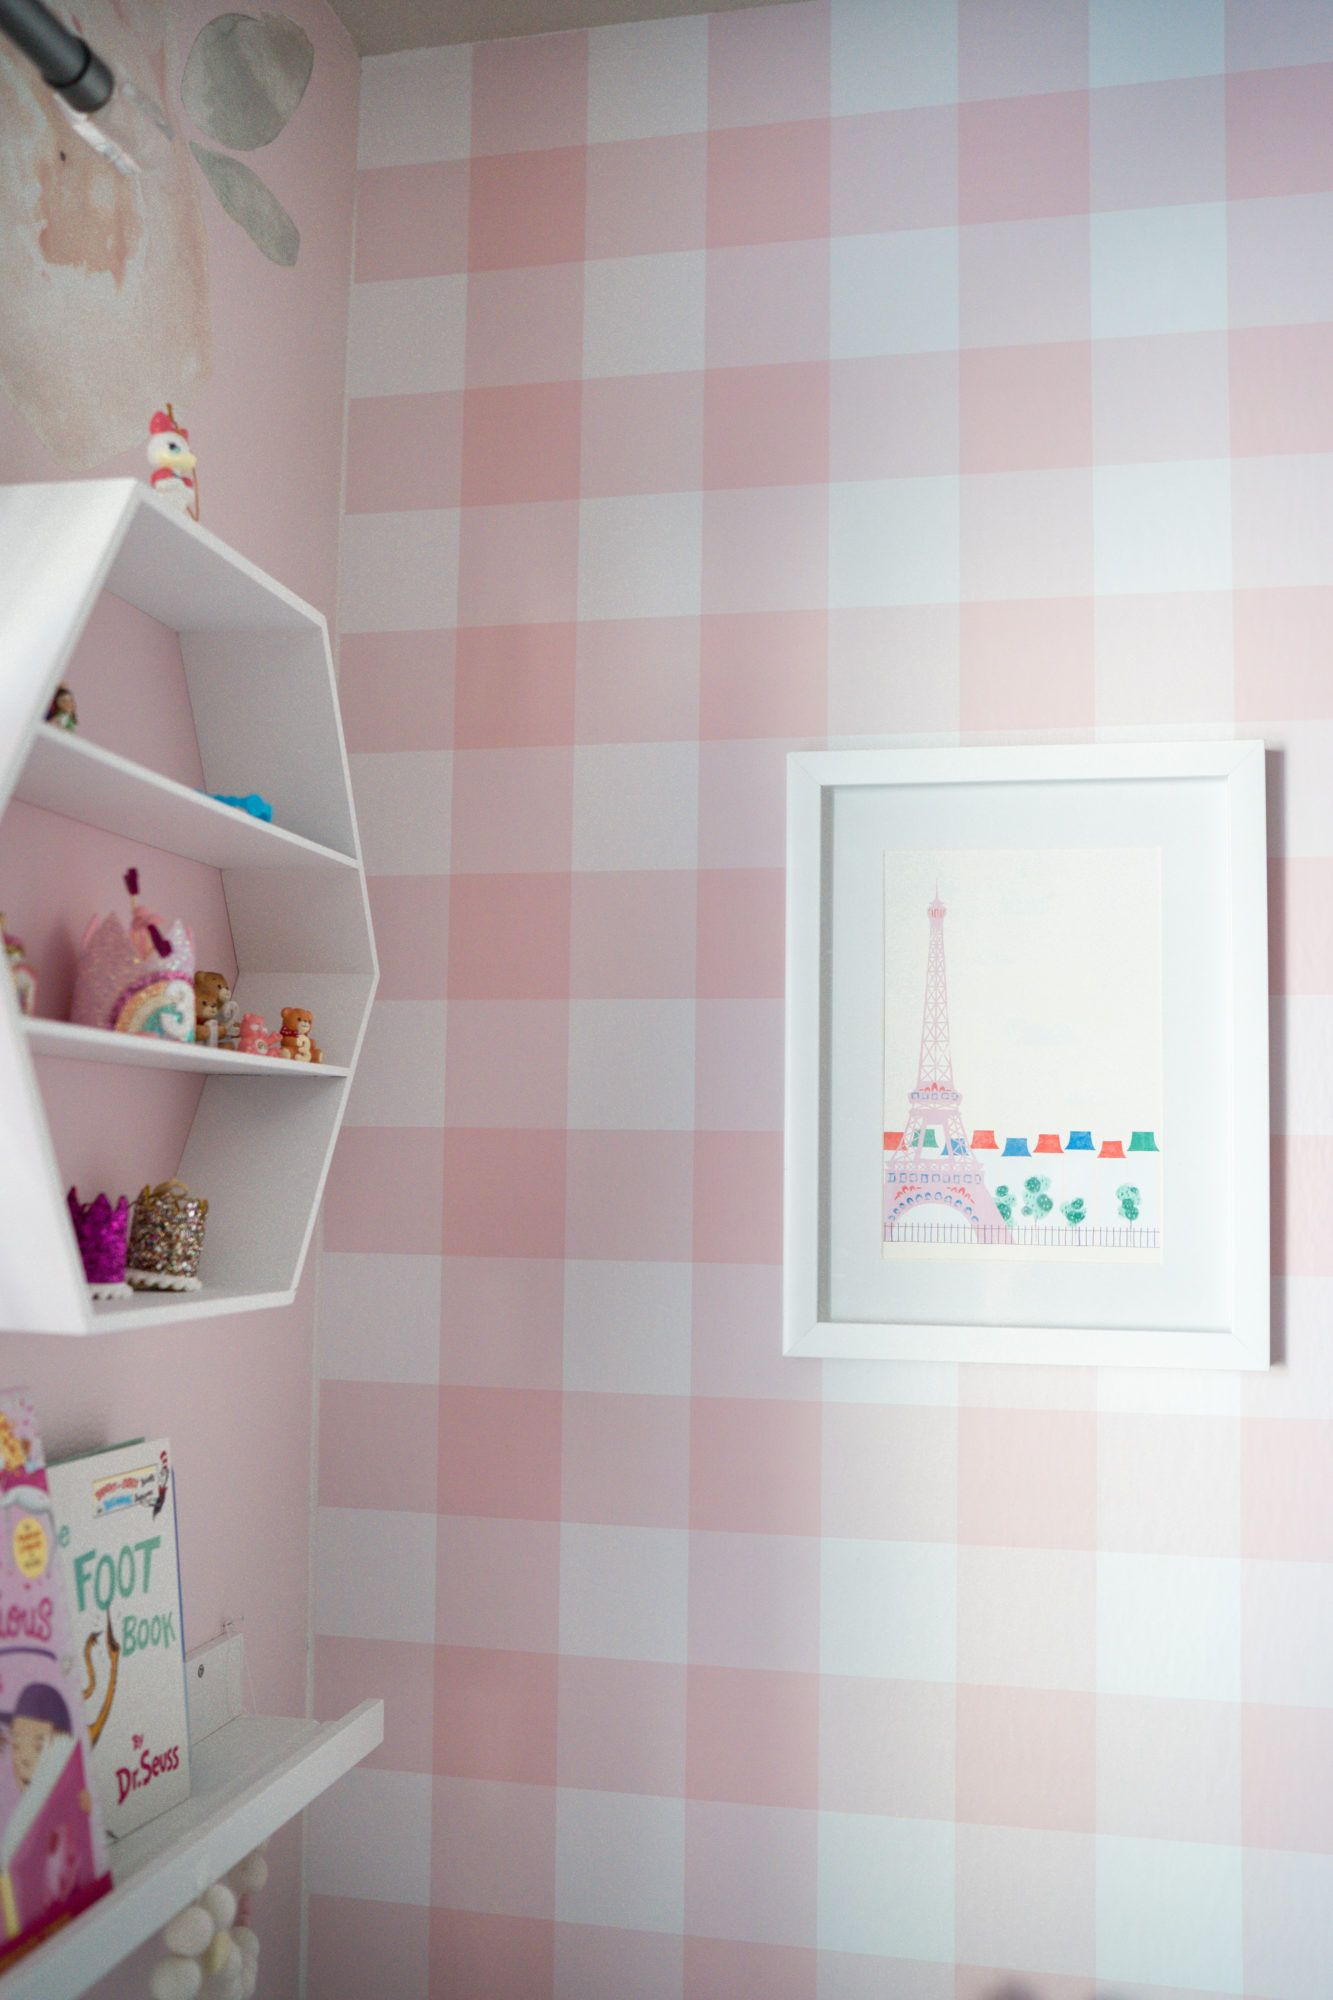 Chelsee from The House of Hood Blog shares colorful girls room decor ideas from the Flower Kids line at Walmart! The most vibrant, whimsical, fun kids home decor line around! #girlsroom #girlsroomdecor #toddlerroom #bunkbeds #wallpaper # homedecor #kidsdecor